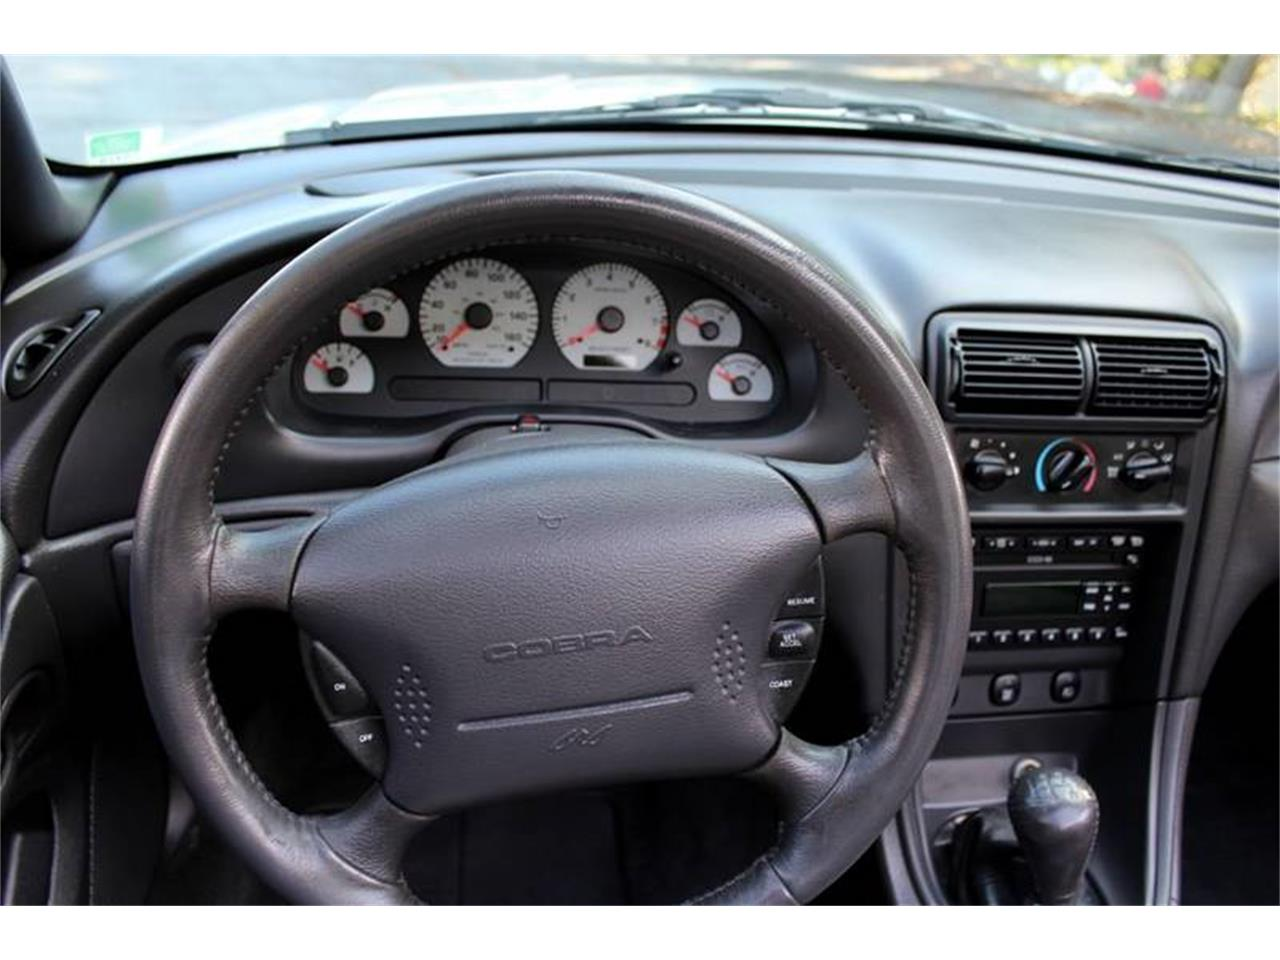 Large Picture of '01 Mustang SVT Cobra - $15,900.00 - PYE0